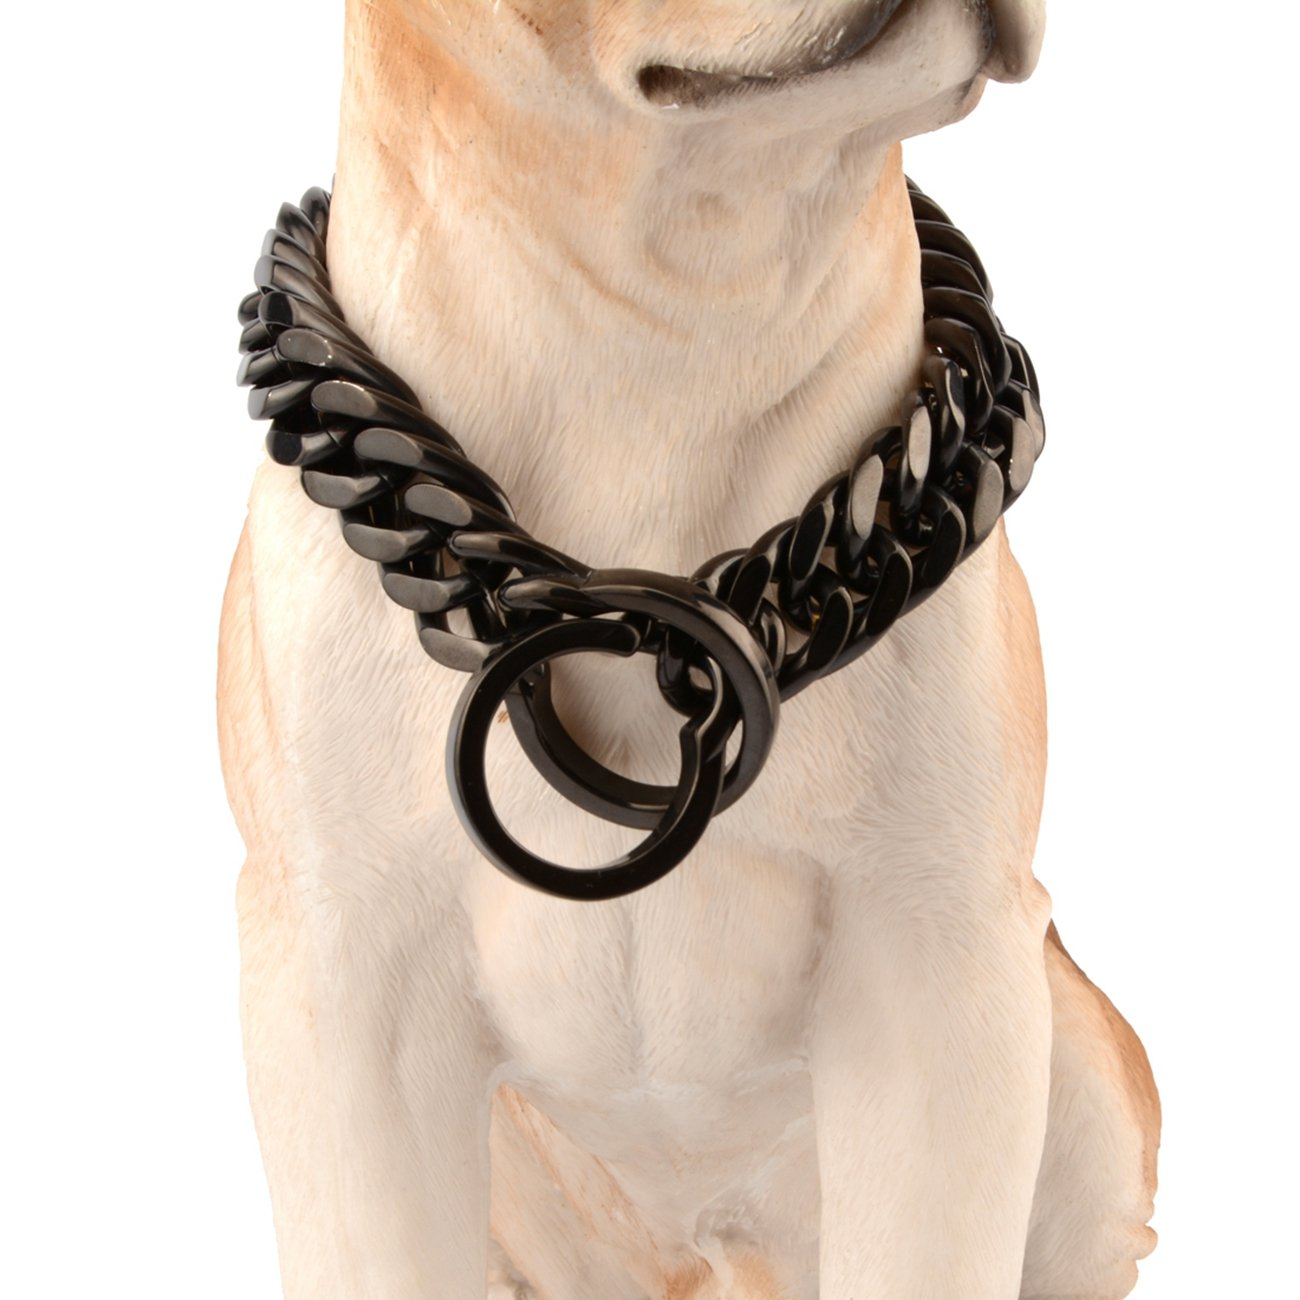 18inch recommend dog's neck 14inch Innovative jewelry 18mm Stainless Steel Black Curb Chain Strong Dog Choke Chain Collar Pet Necklace Best Pit Bull, Mastiff,& More Breeds,16 -36 (18 )